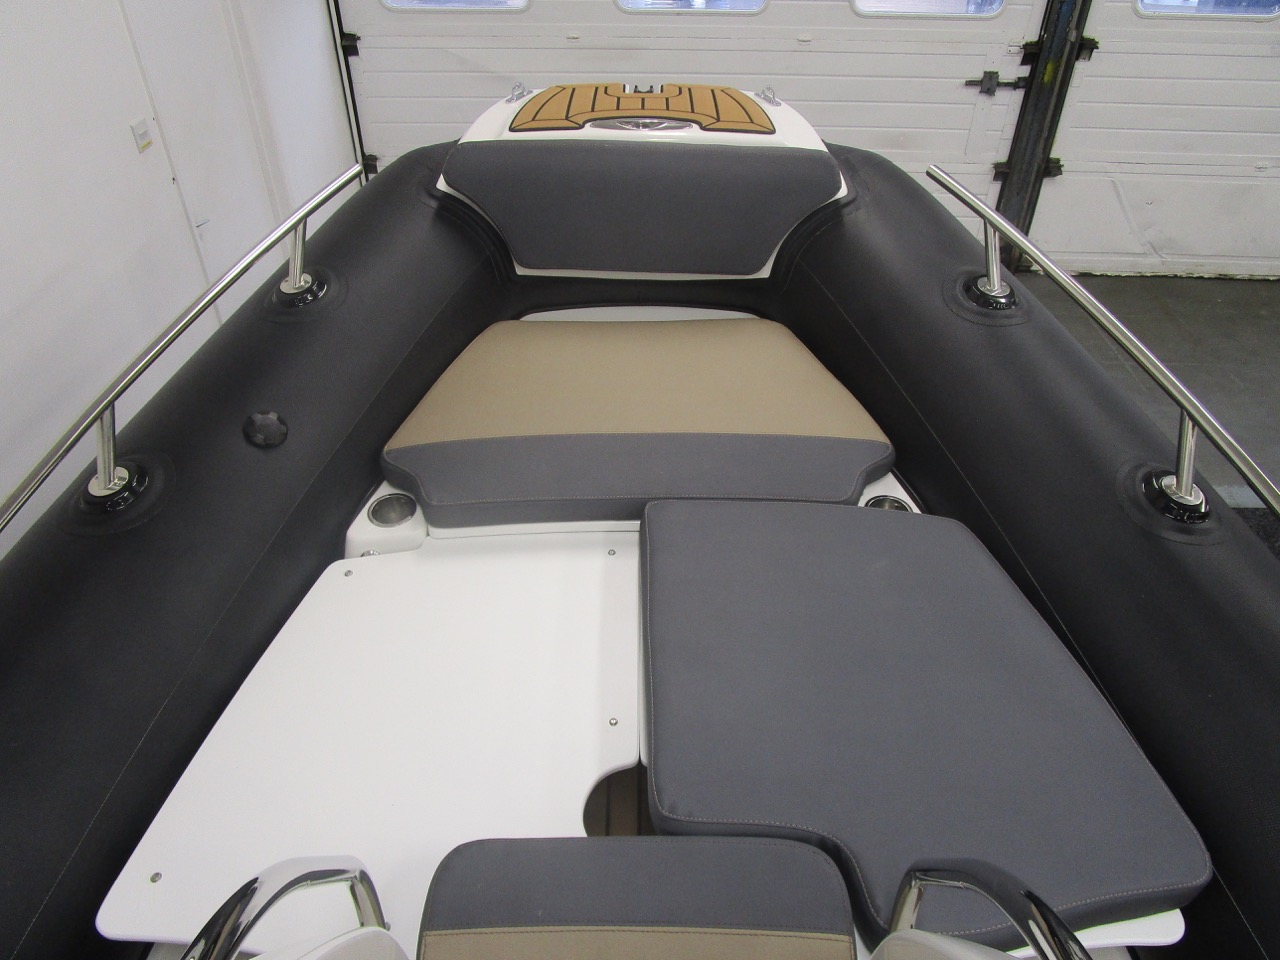 Grand RIB Golden Line G650 stbd suncdeck cushion fitted